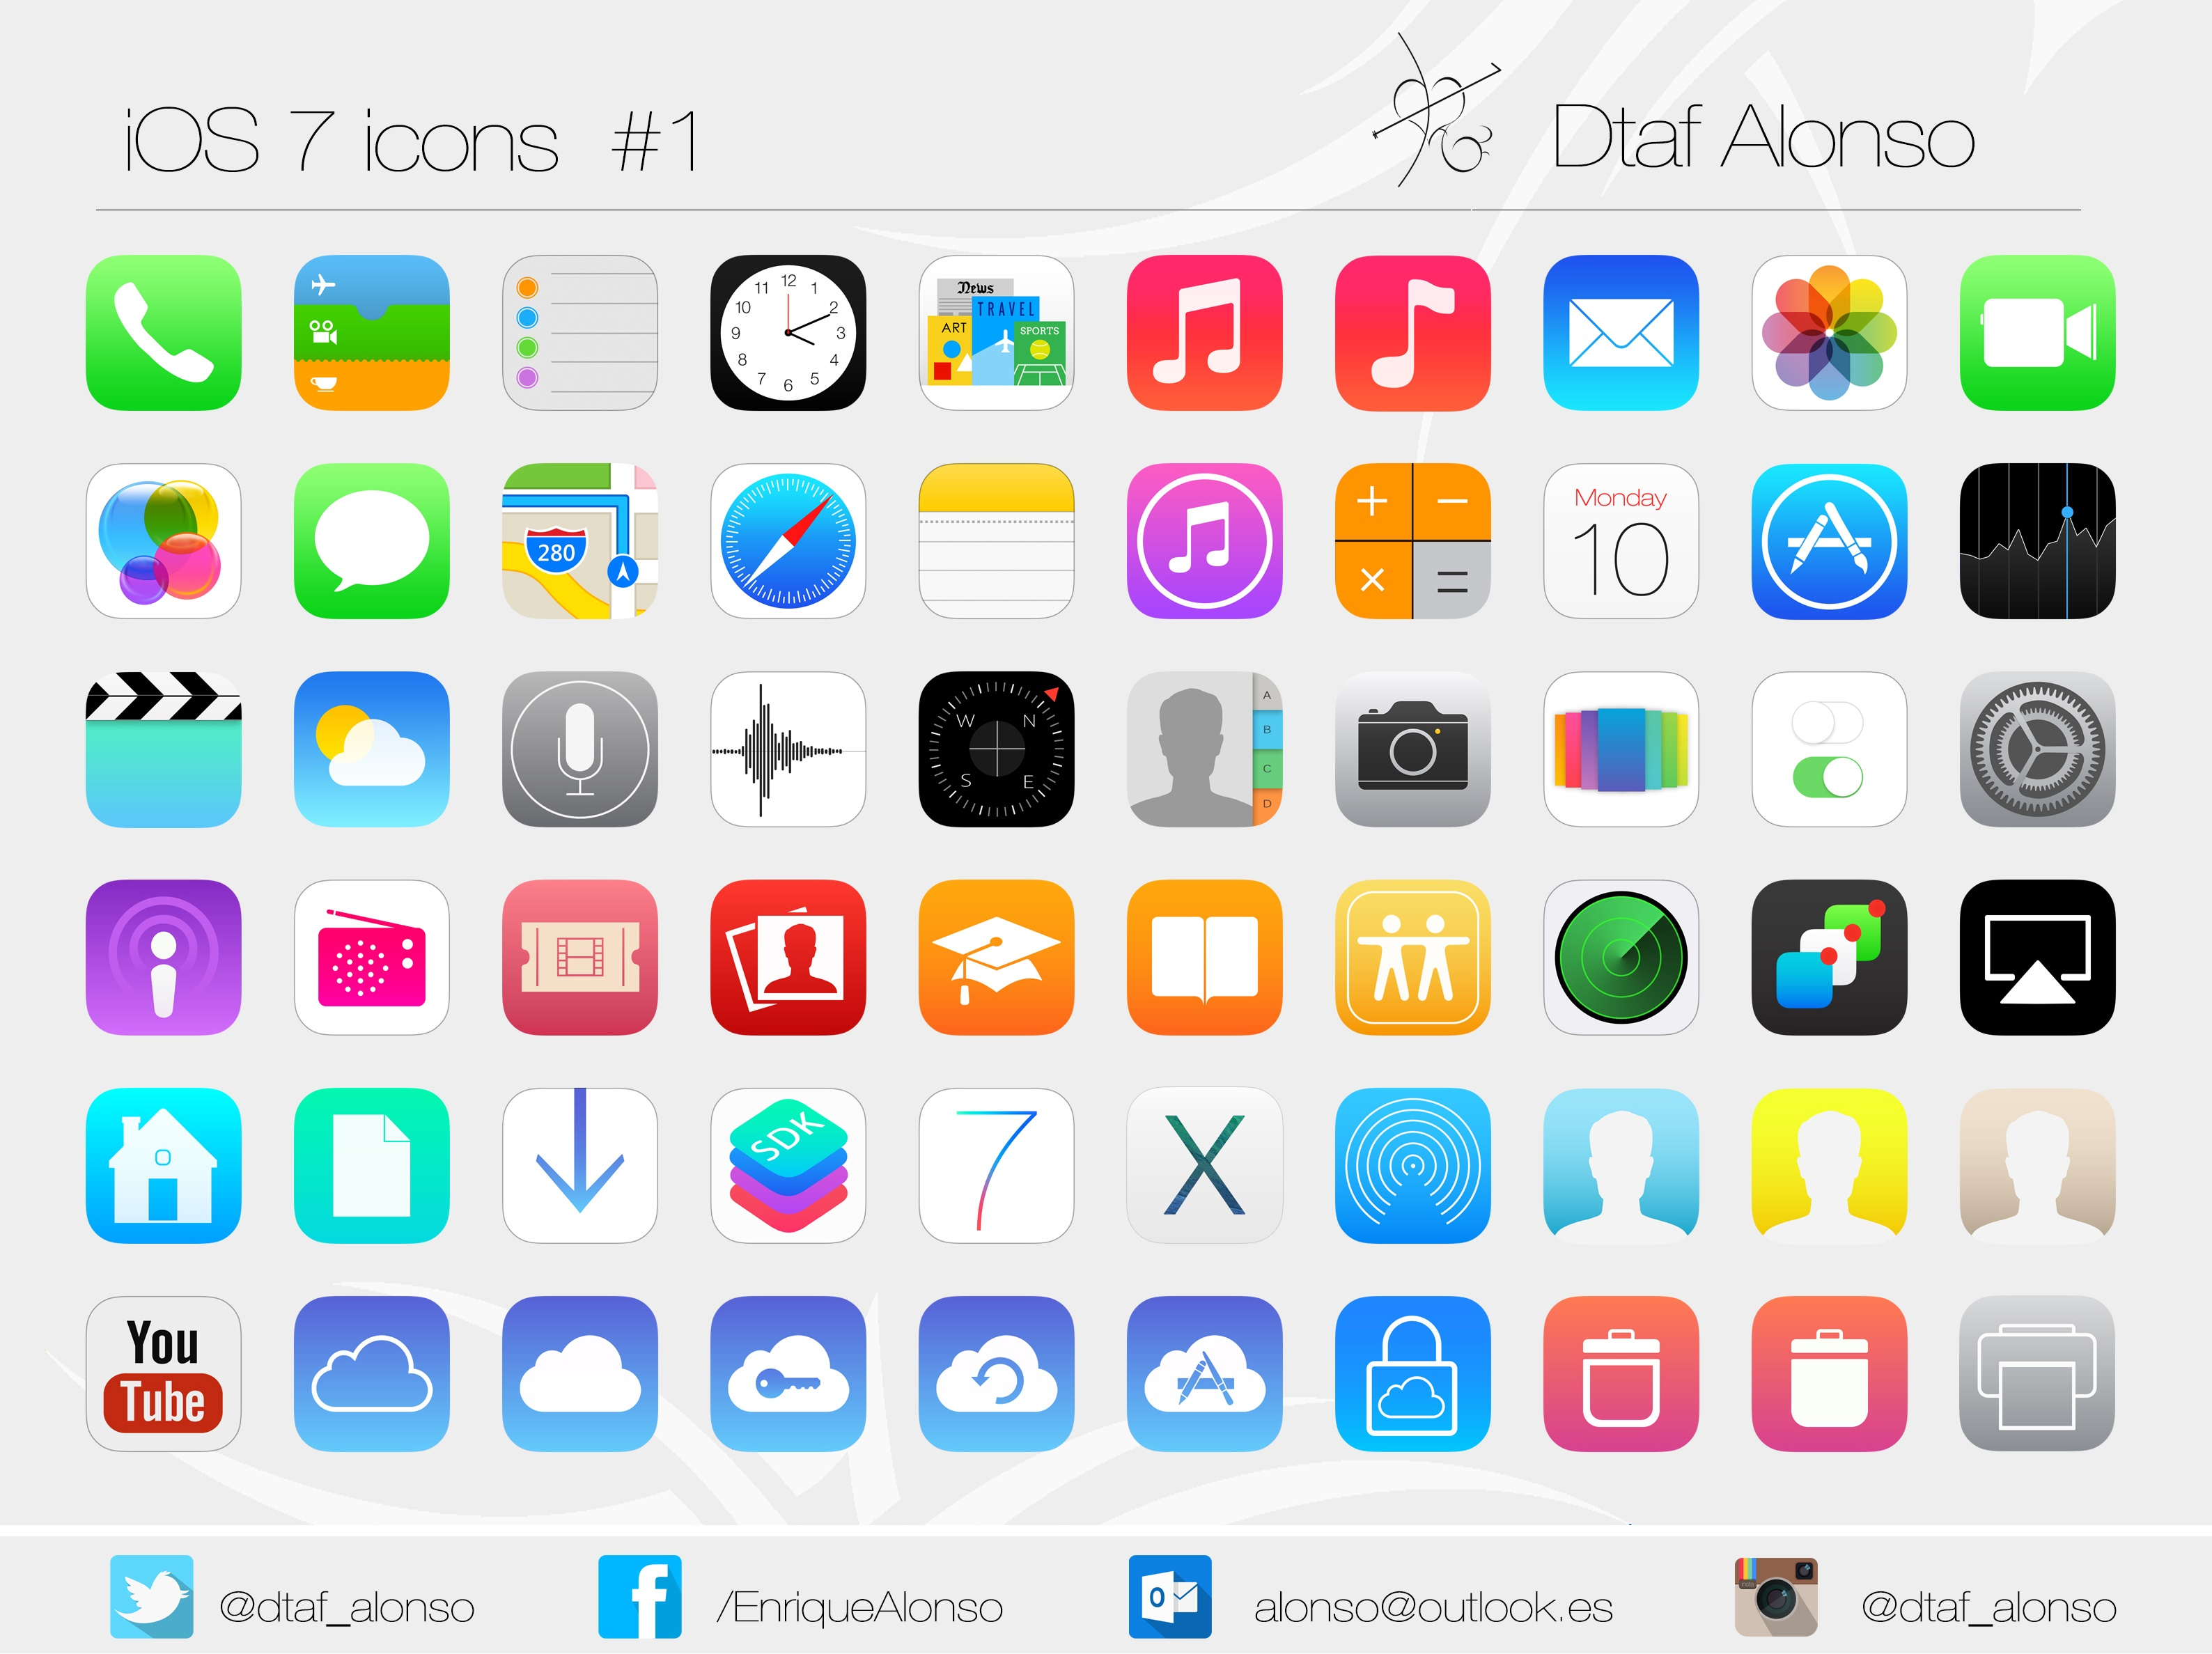 13 Apple IPhone App Icons Images - iPhone Weather App Icon, Apple